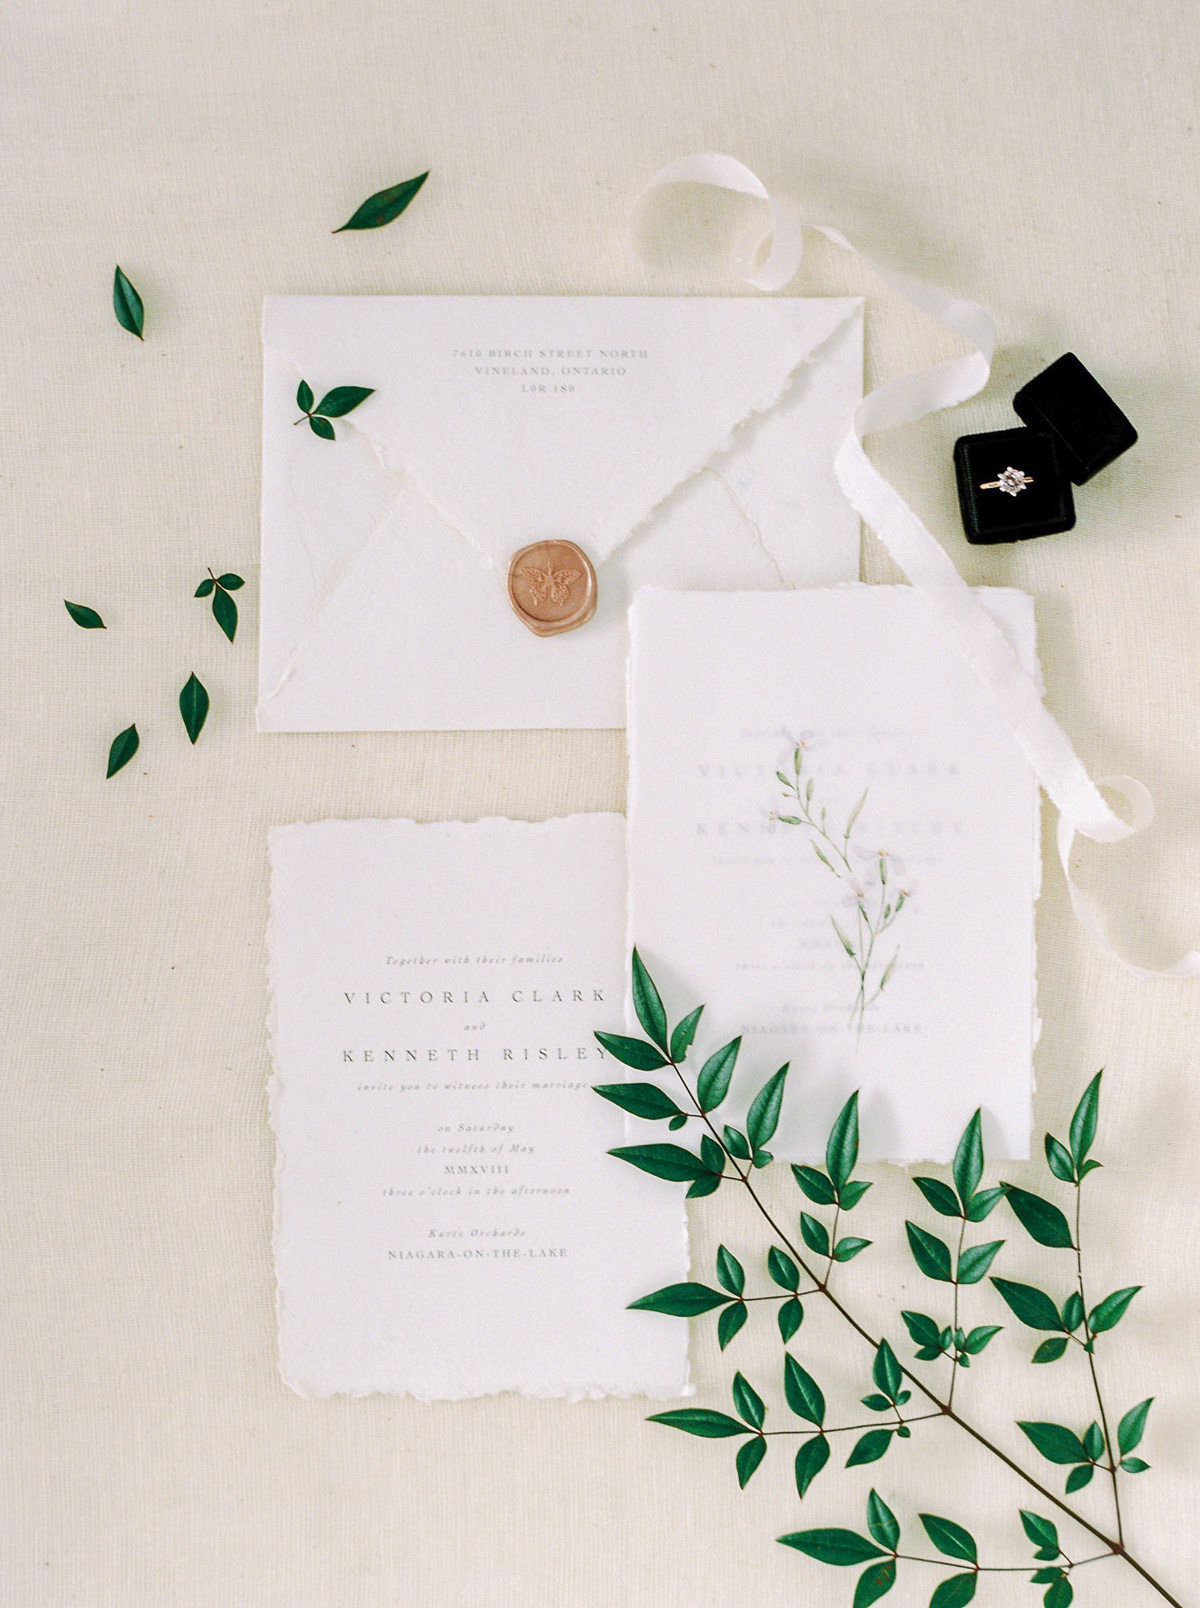 will-reid-photo-vineyard-bride-swish-list-kurtz-orchards-market-niagara-on-the-lake-wedding-editorial-30.jpg